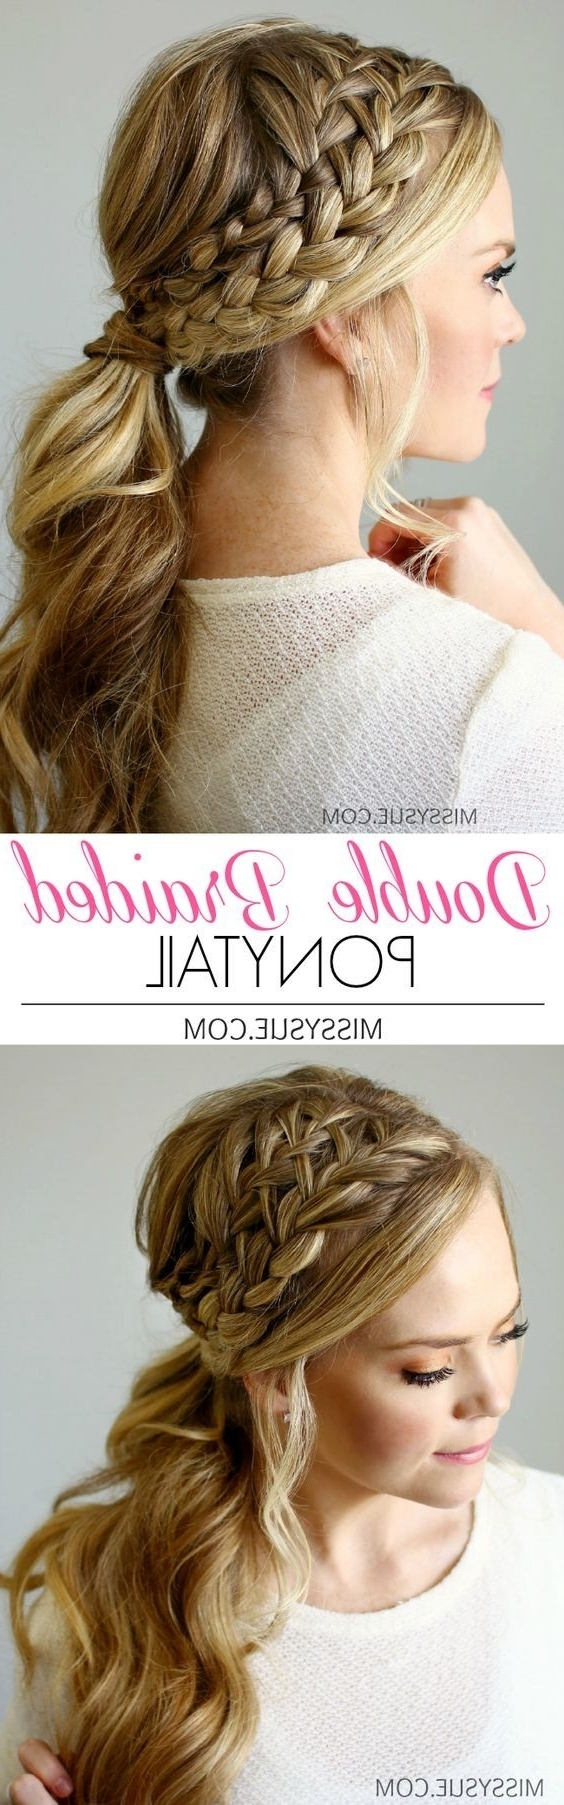 18 Cute Braided Ponytail Styles – Popular Haircuts Intended For Trendy Updo Pony Hairstyles With Side Braids (View 3 of 20)